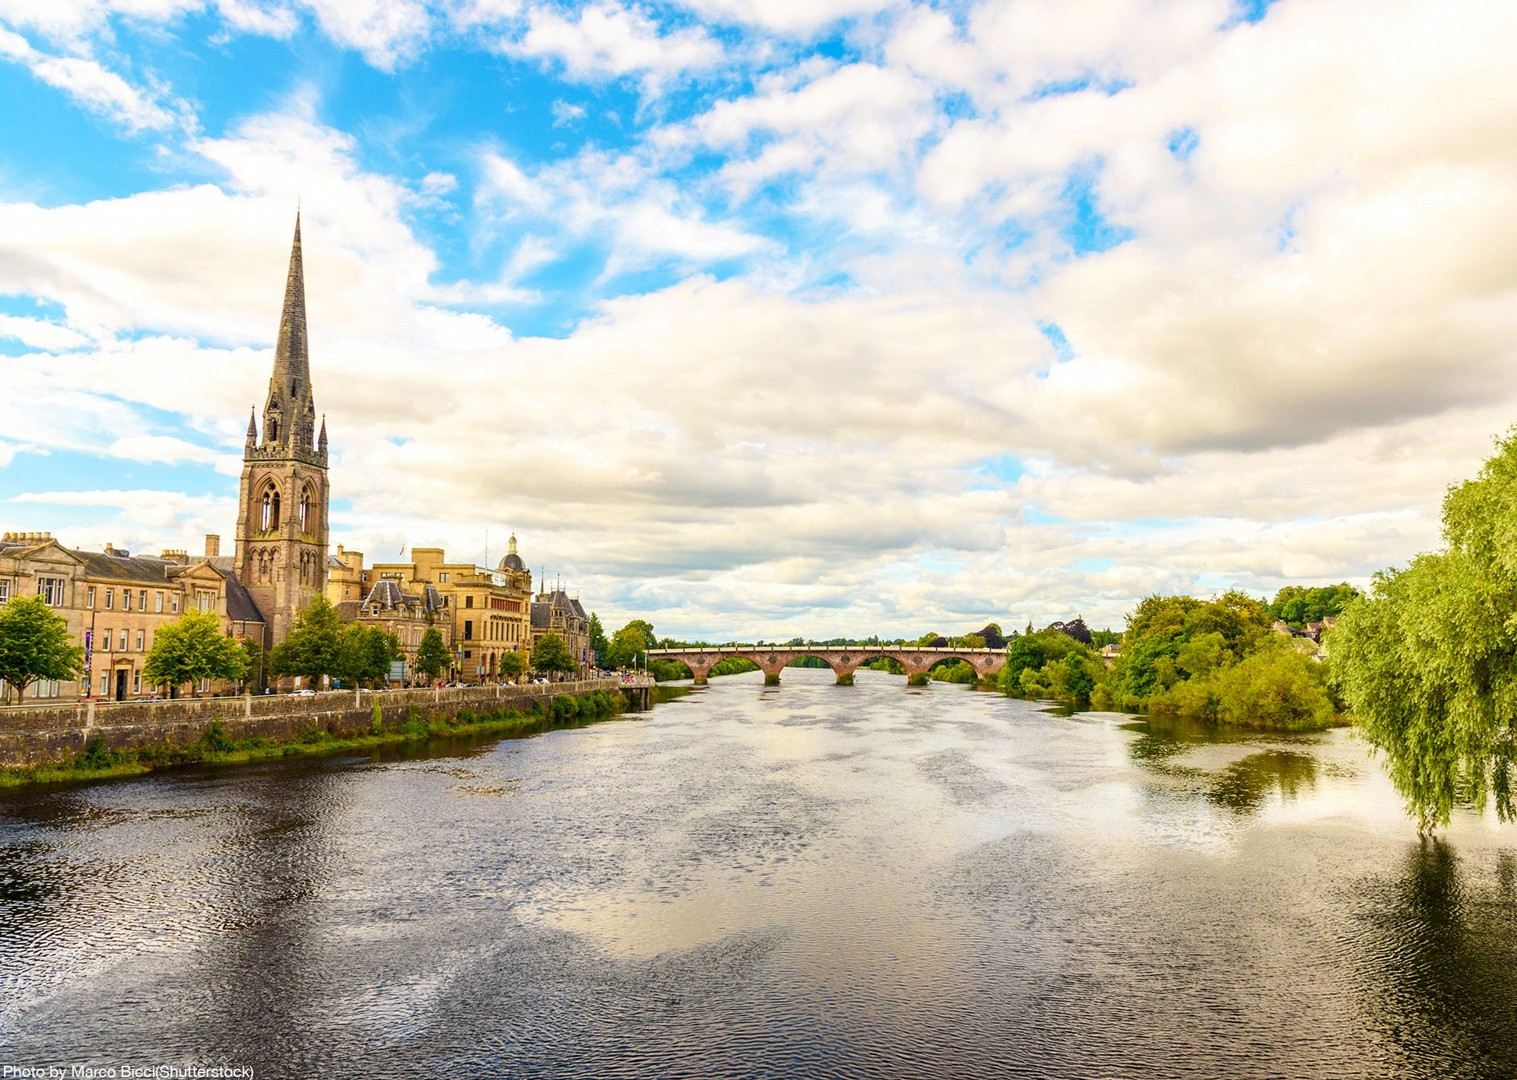 river-clyde-scotland-cycling-tour-uk-traditional-culture-town-villages.jpg - UK - Scotland - Lochs and Glens - Self-Guided Family Cycling Holiday - Family Cycling